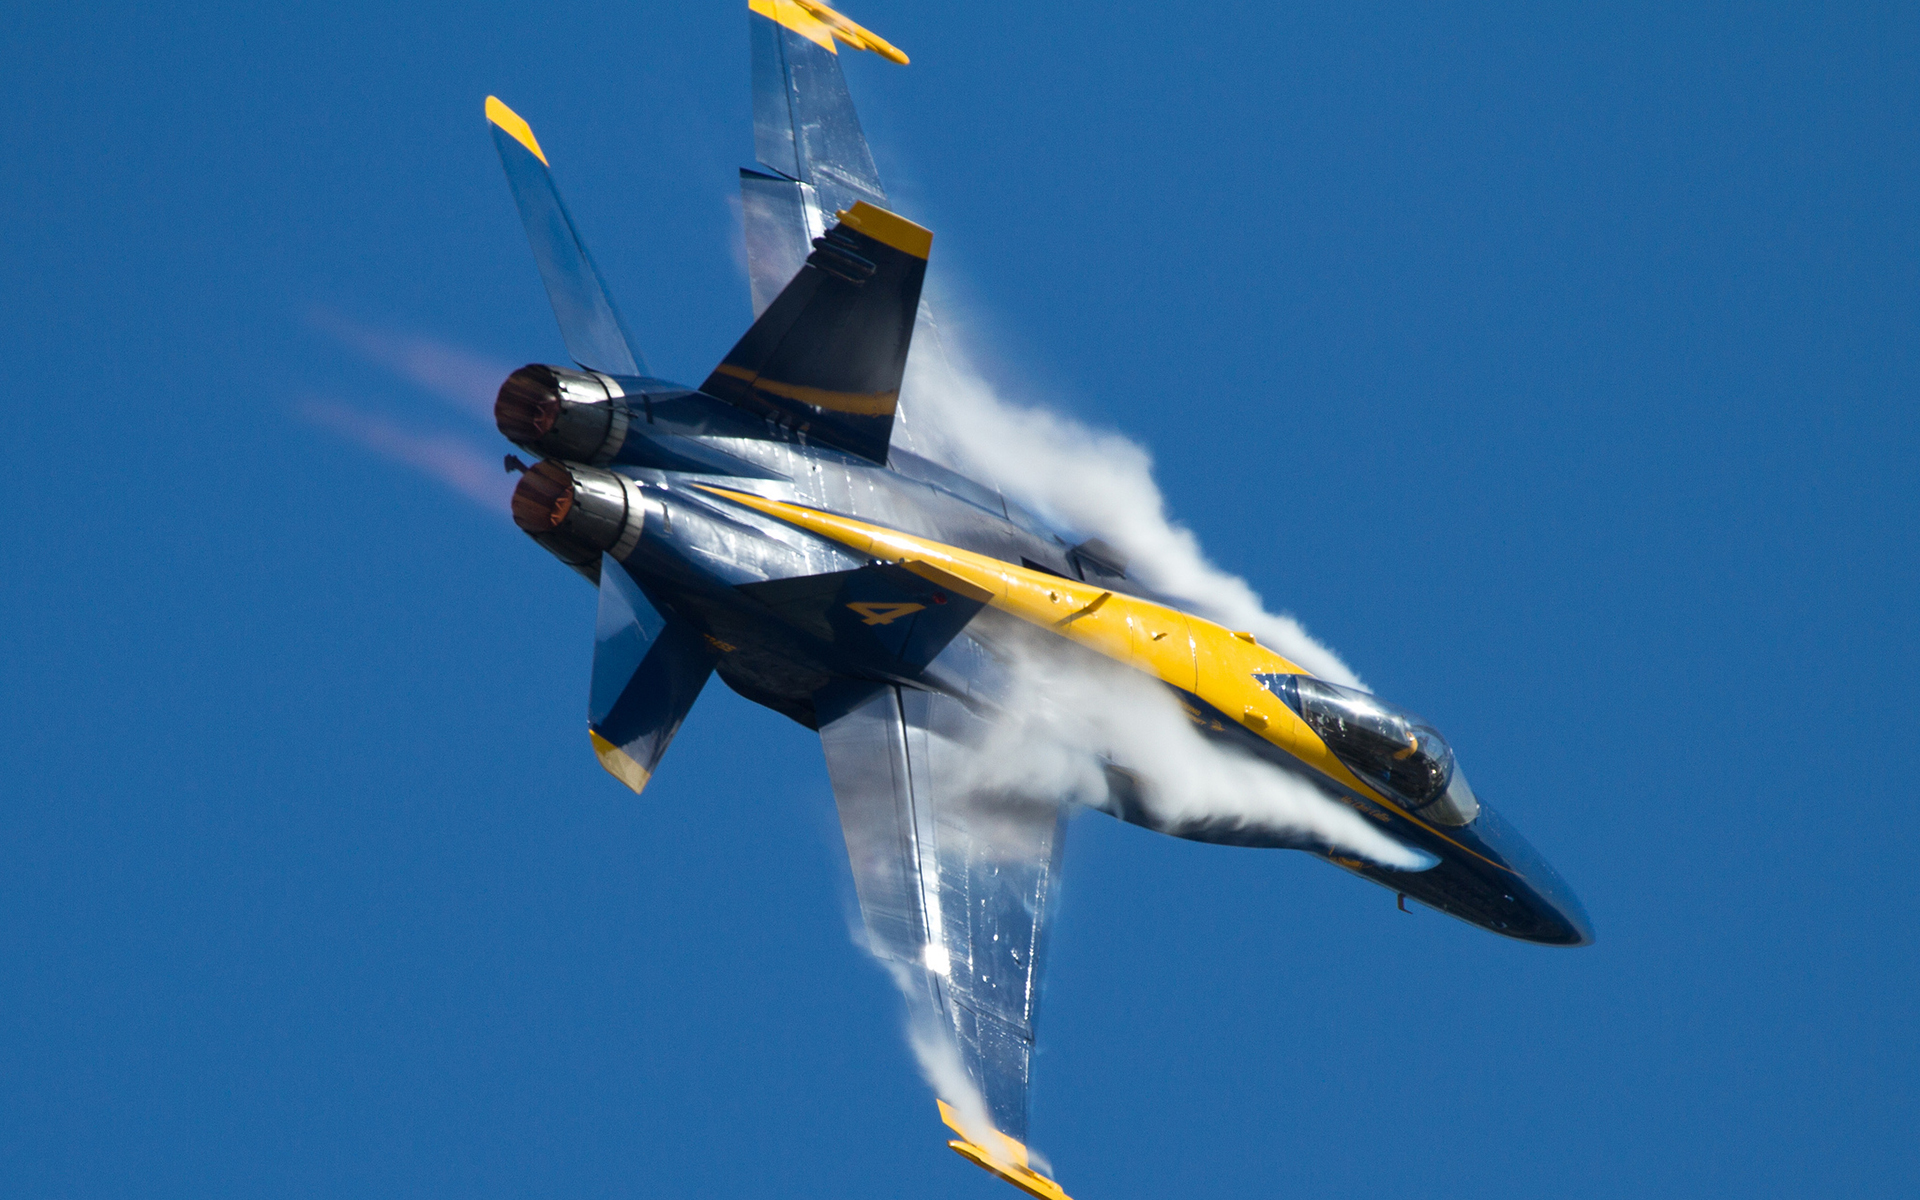 Jet Blue Angels military sky wallpaper background 1920x1200